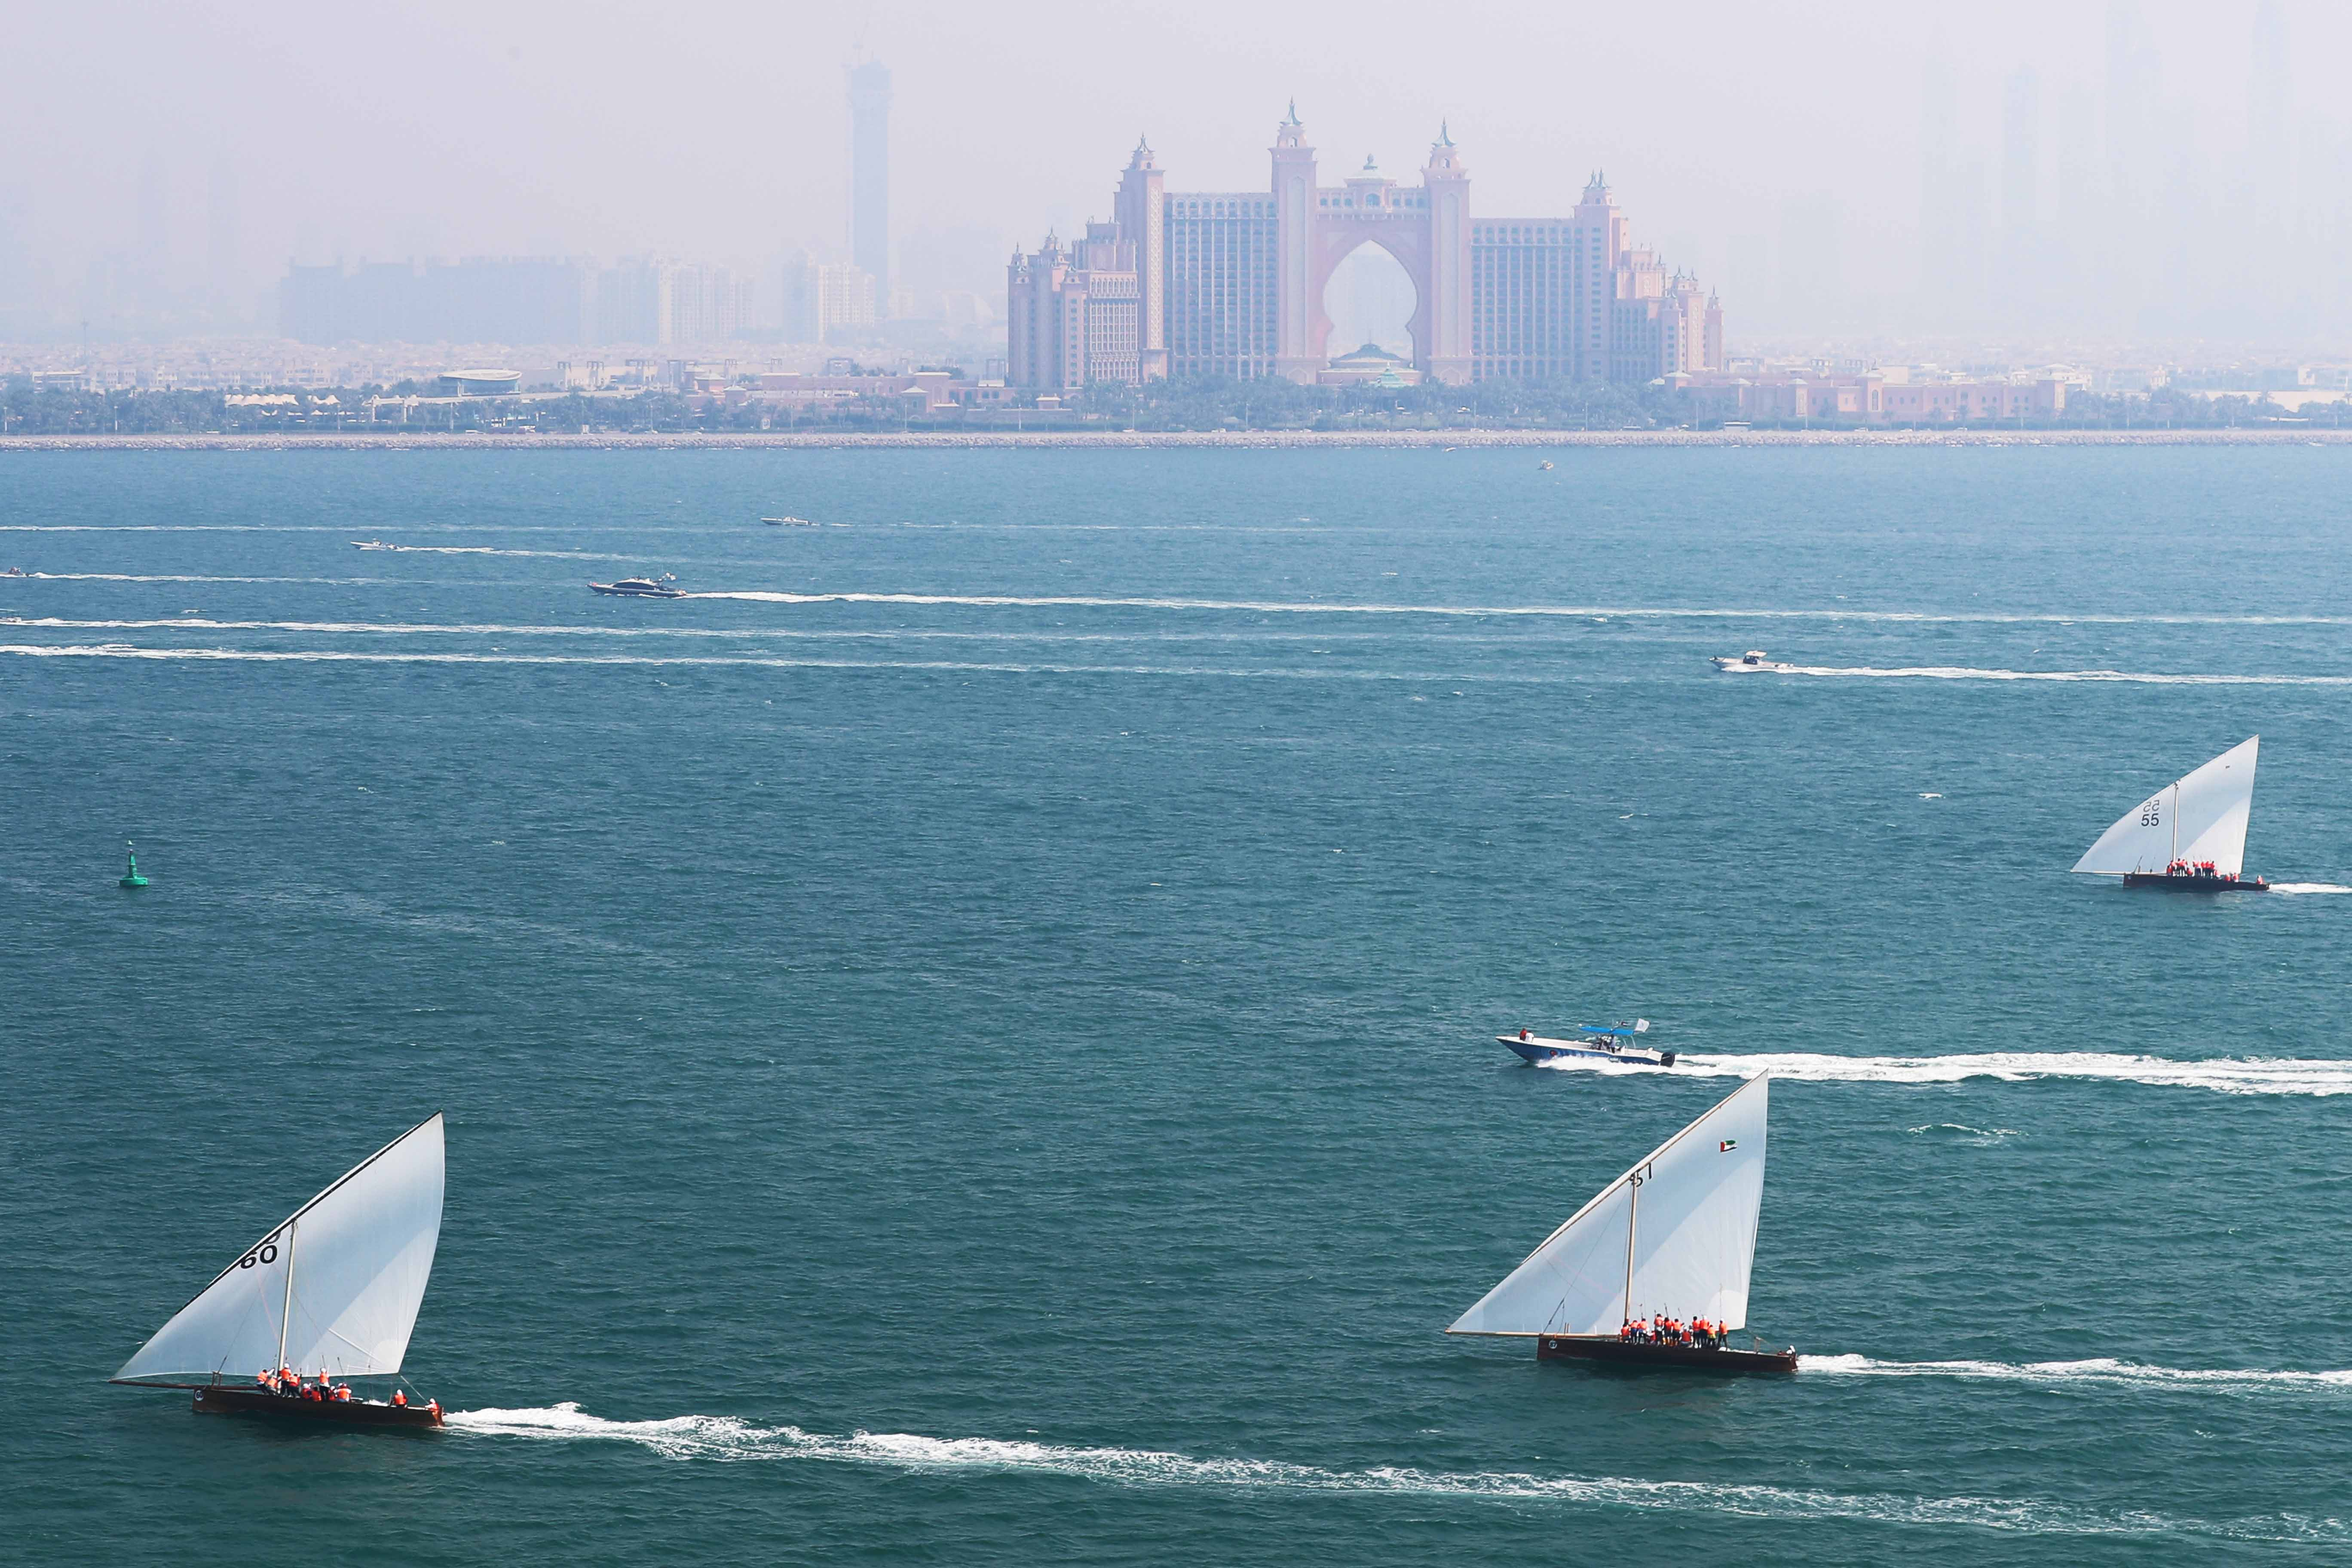 43ft Dhow Race Returns to Sail in Dubai Beach on Saturday